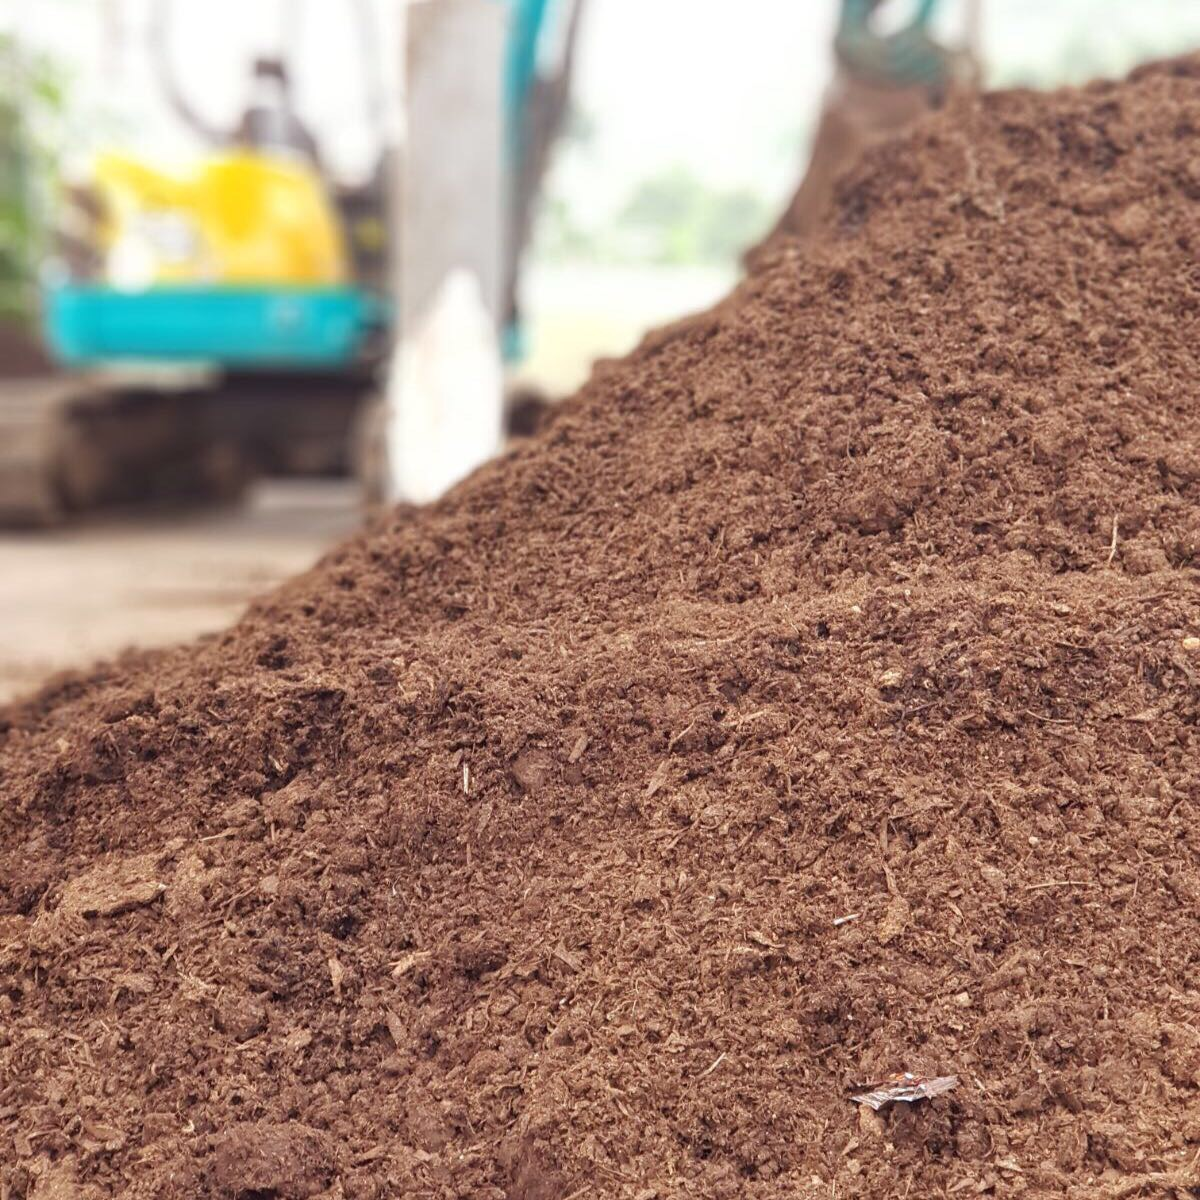 Homemade Compost | Farm 85 Trading